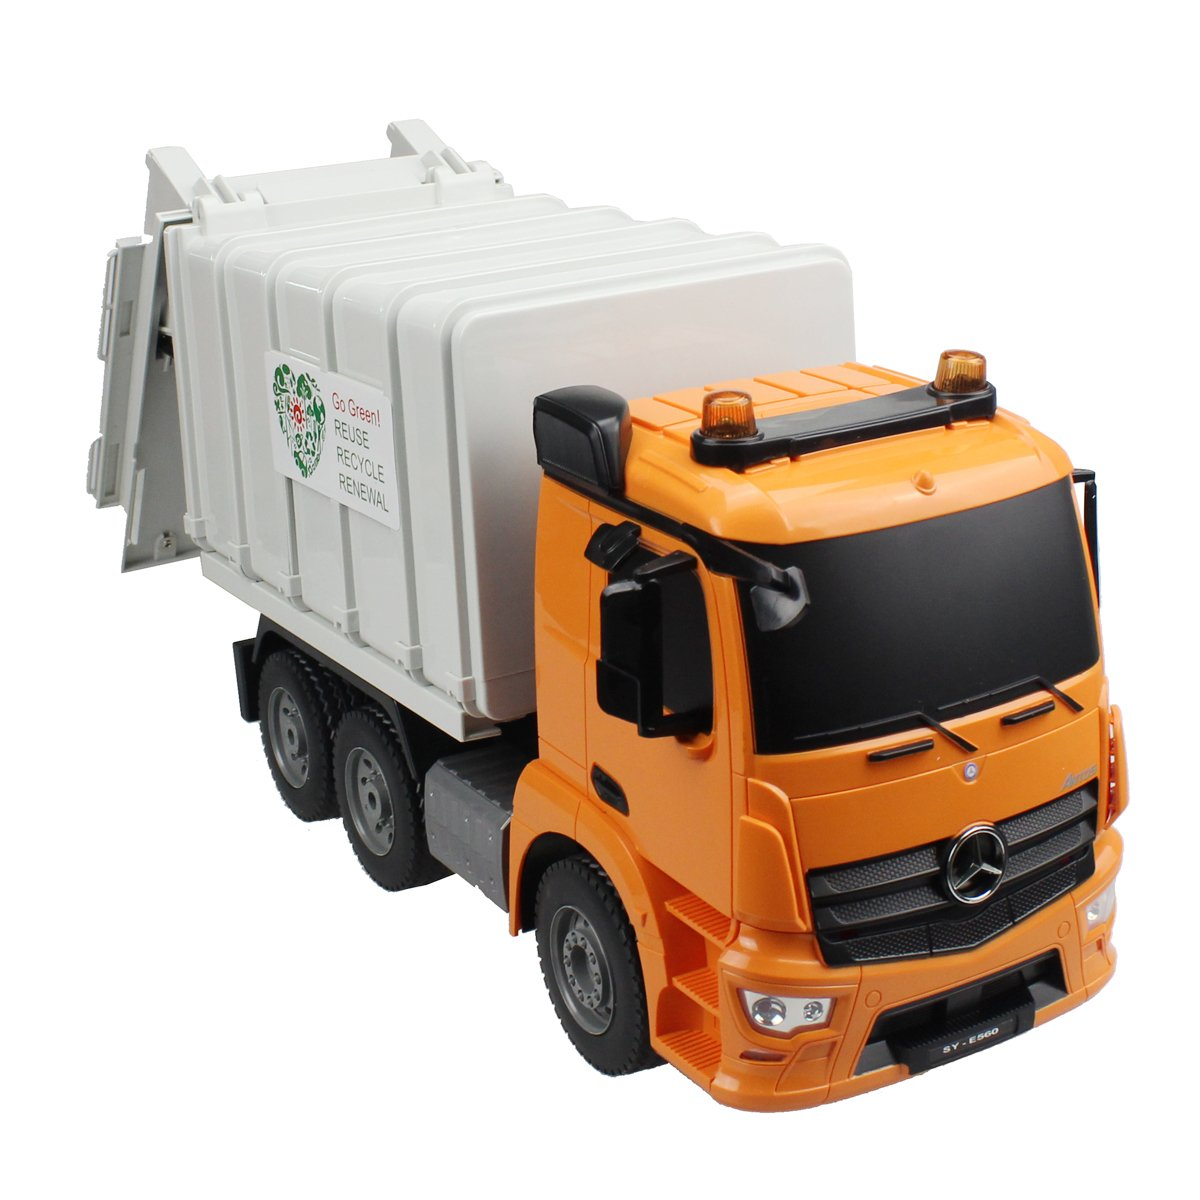 Hugine Rc Garbage Truck Mercedes Benz Authorized 24g 10 Channel Dump Off Road Music Remote Control 14 Cm Rubbish Collector Recycle Sanitation Cars Construction Vehicle Toys